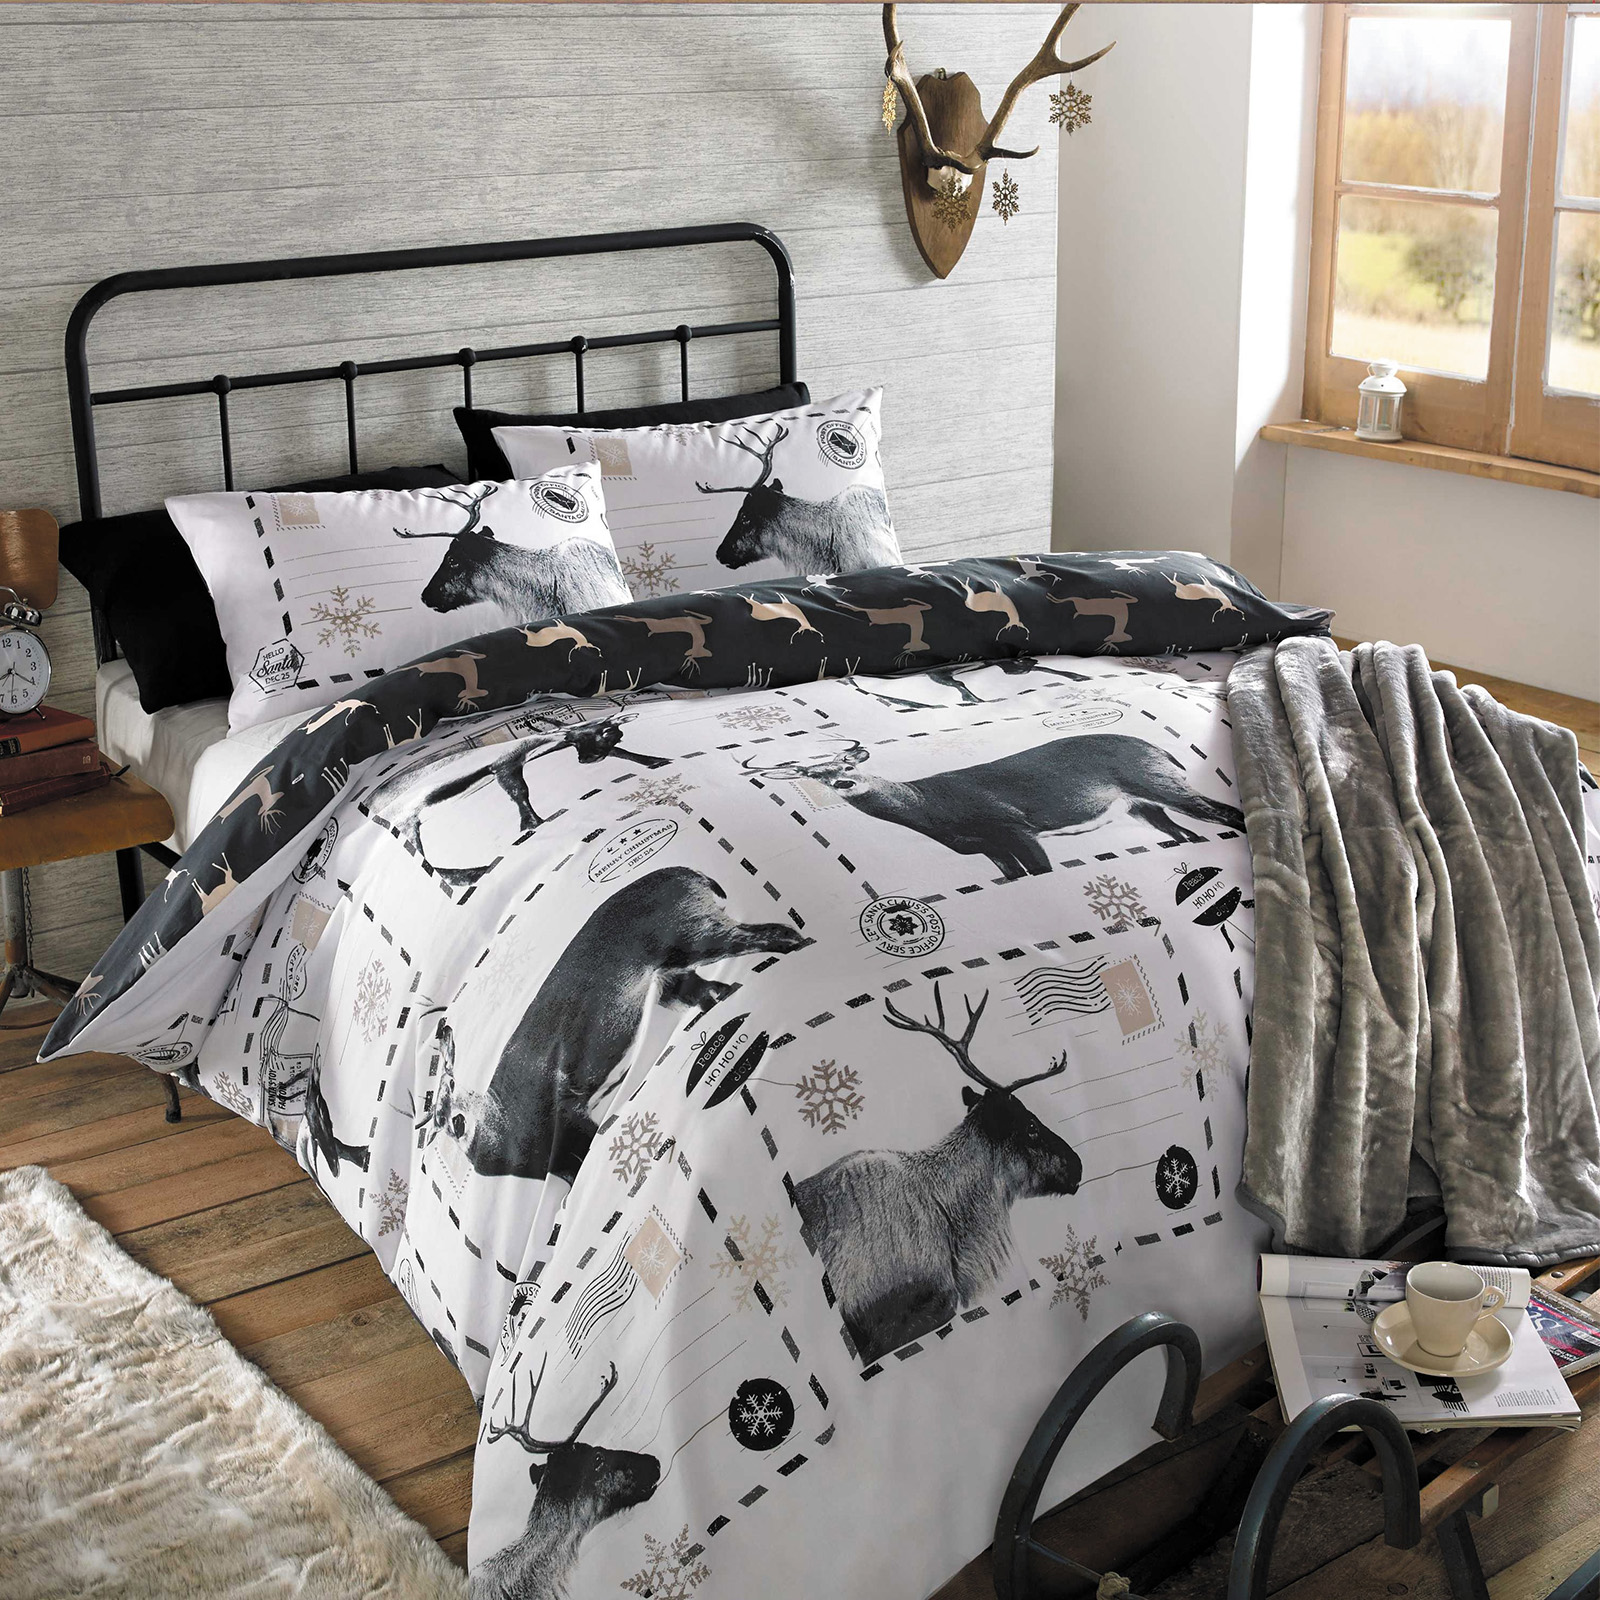 larger twin bedding cartoon duvet kids king size see store bed product image set queen christmas cover